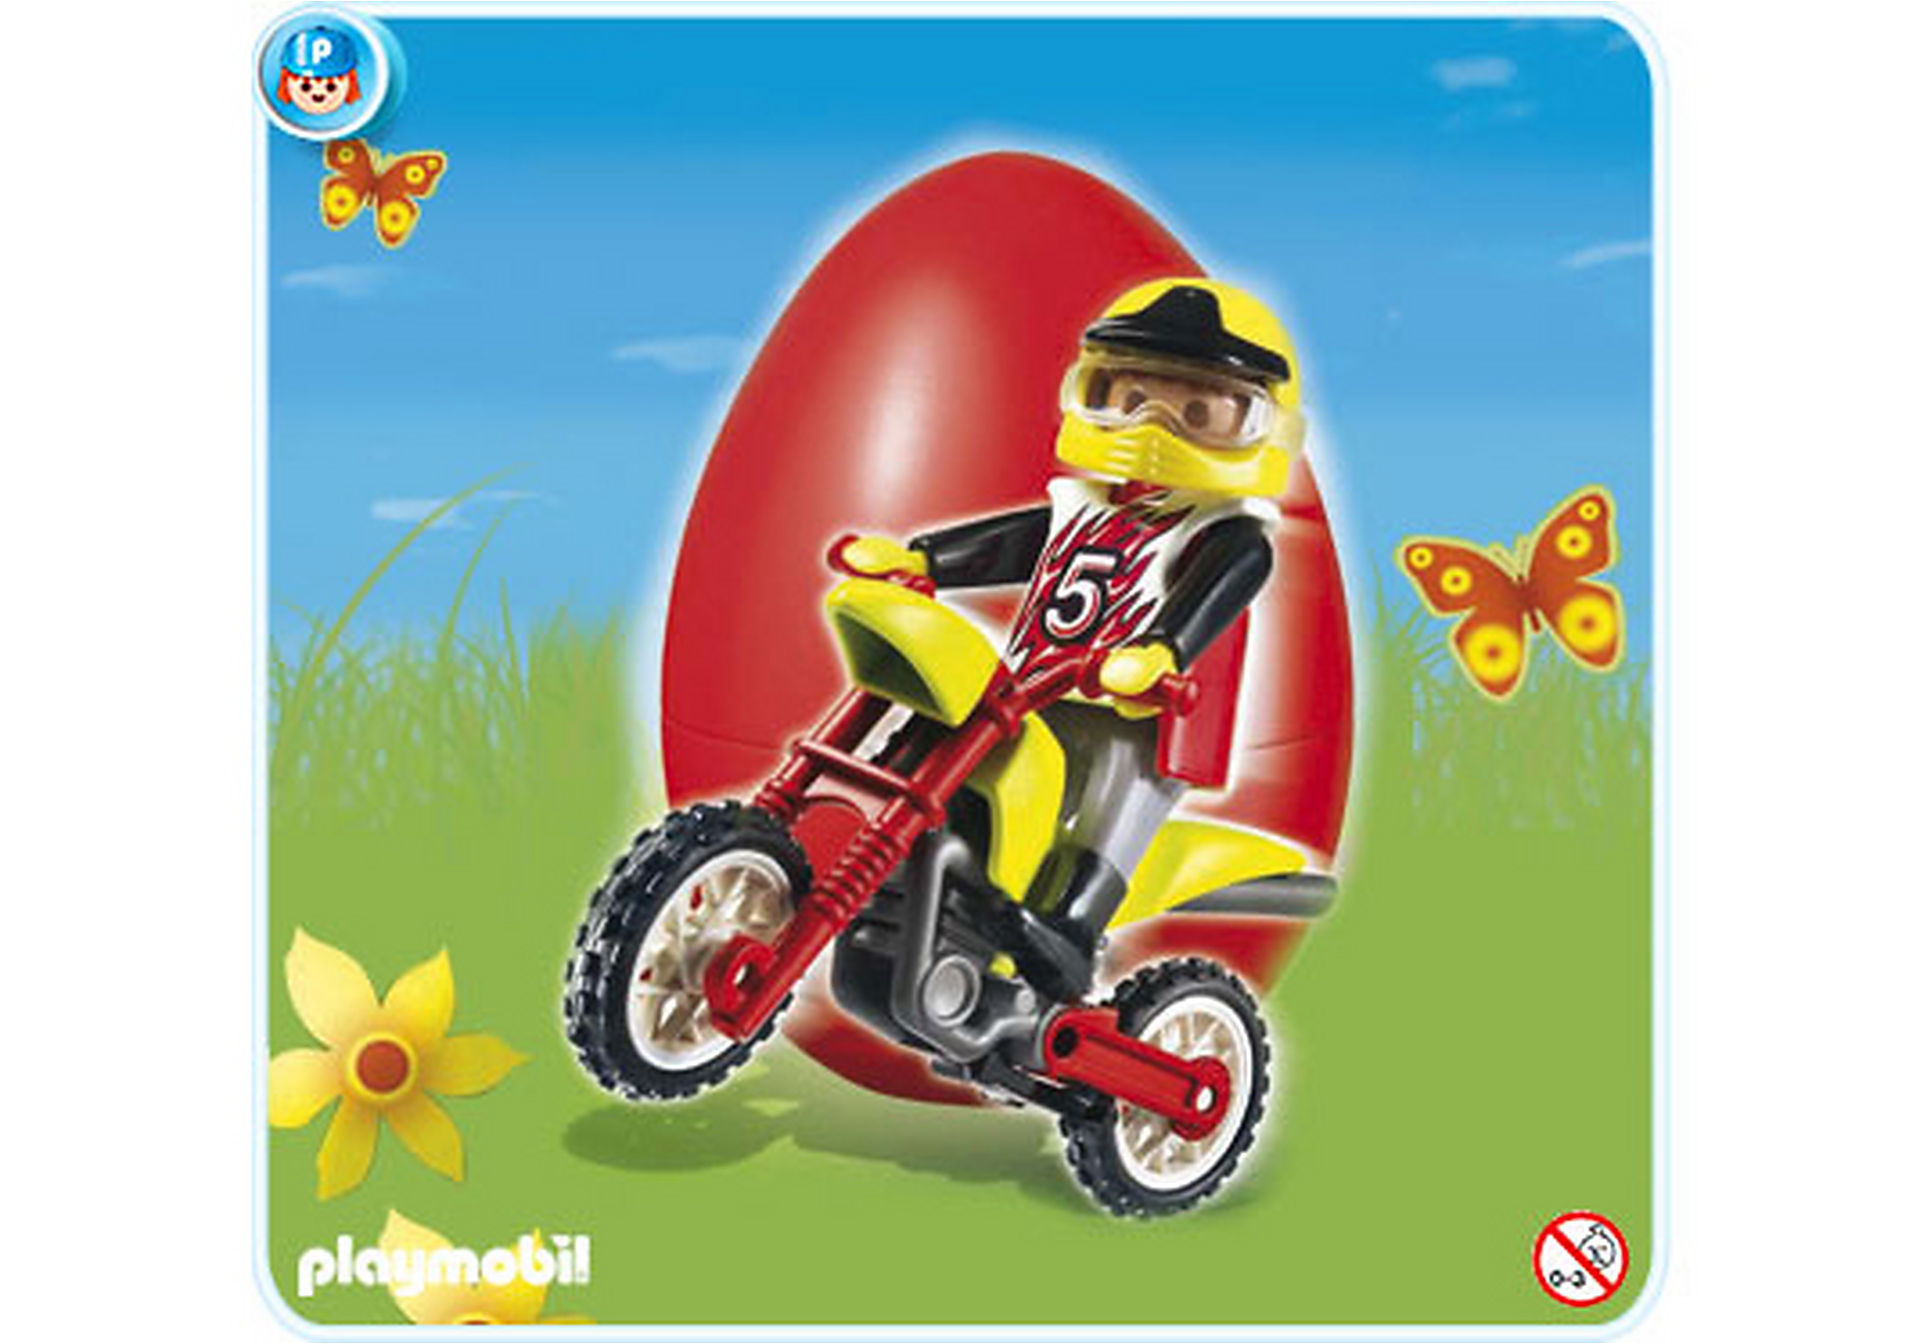 http://media.playmobil.com/i/playmobil/4923-A_product_detail/Oeuf 2010 Pilote et moto cross